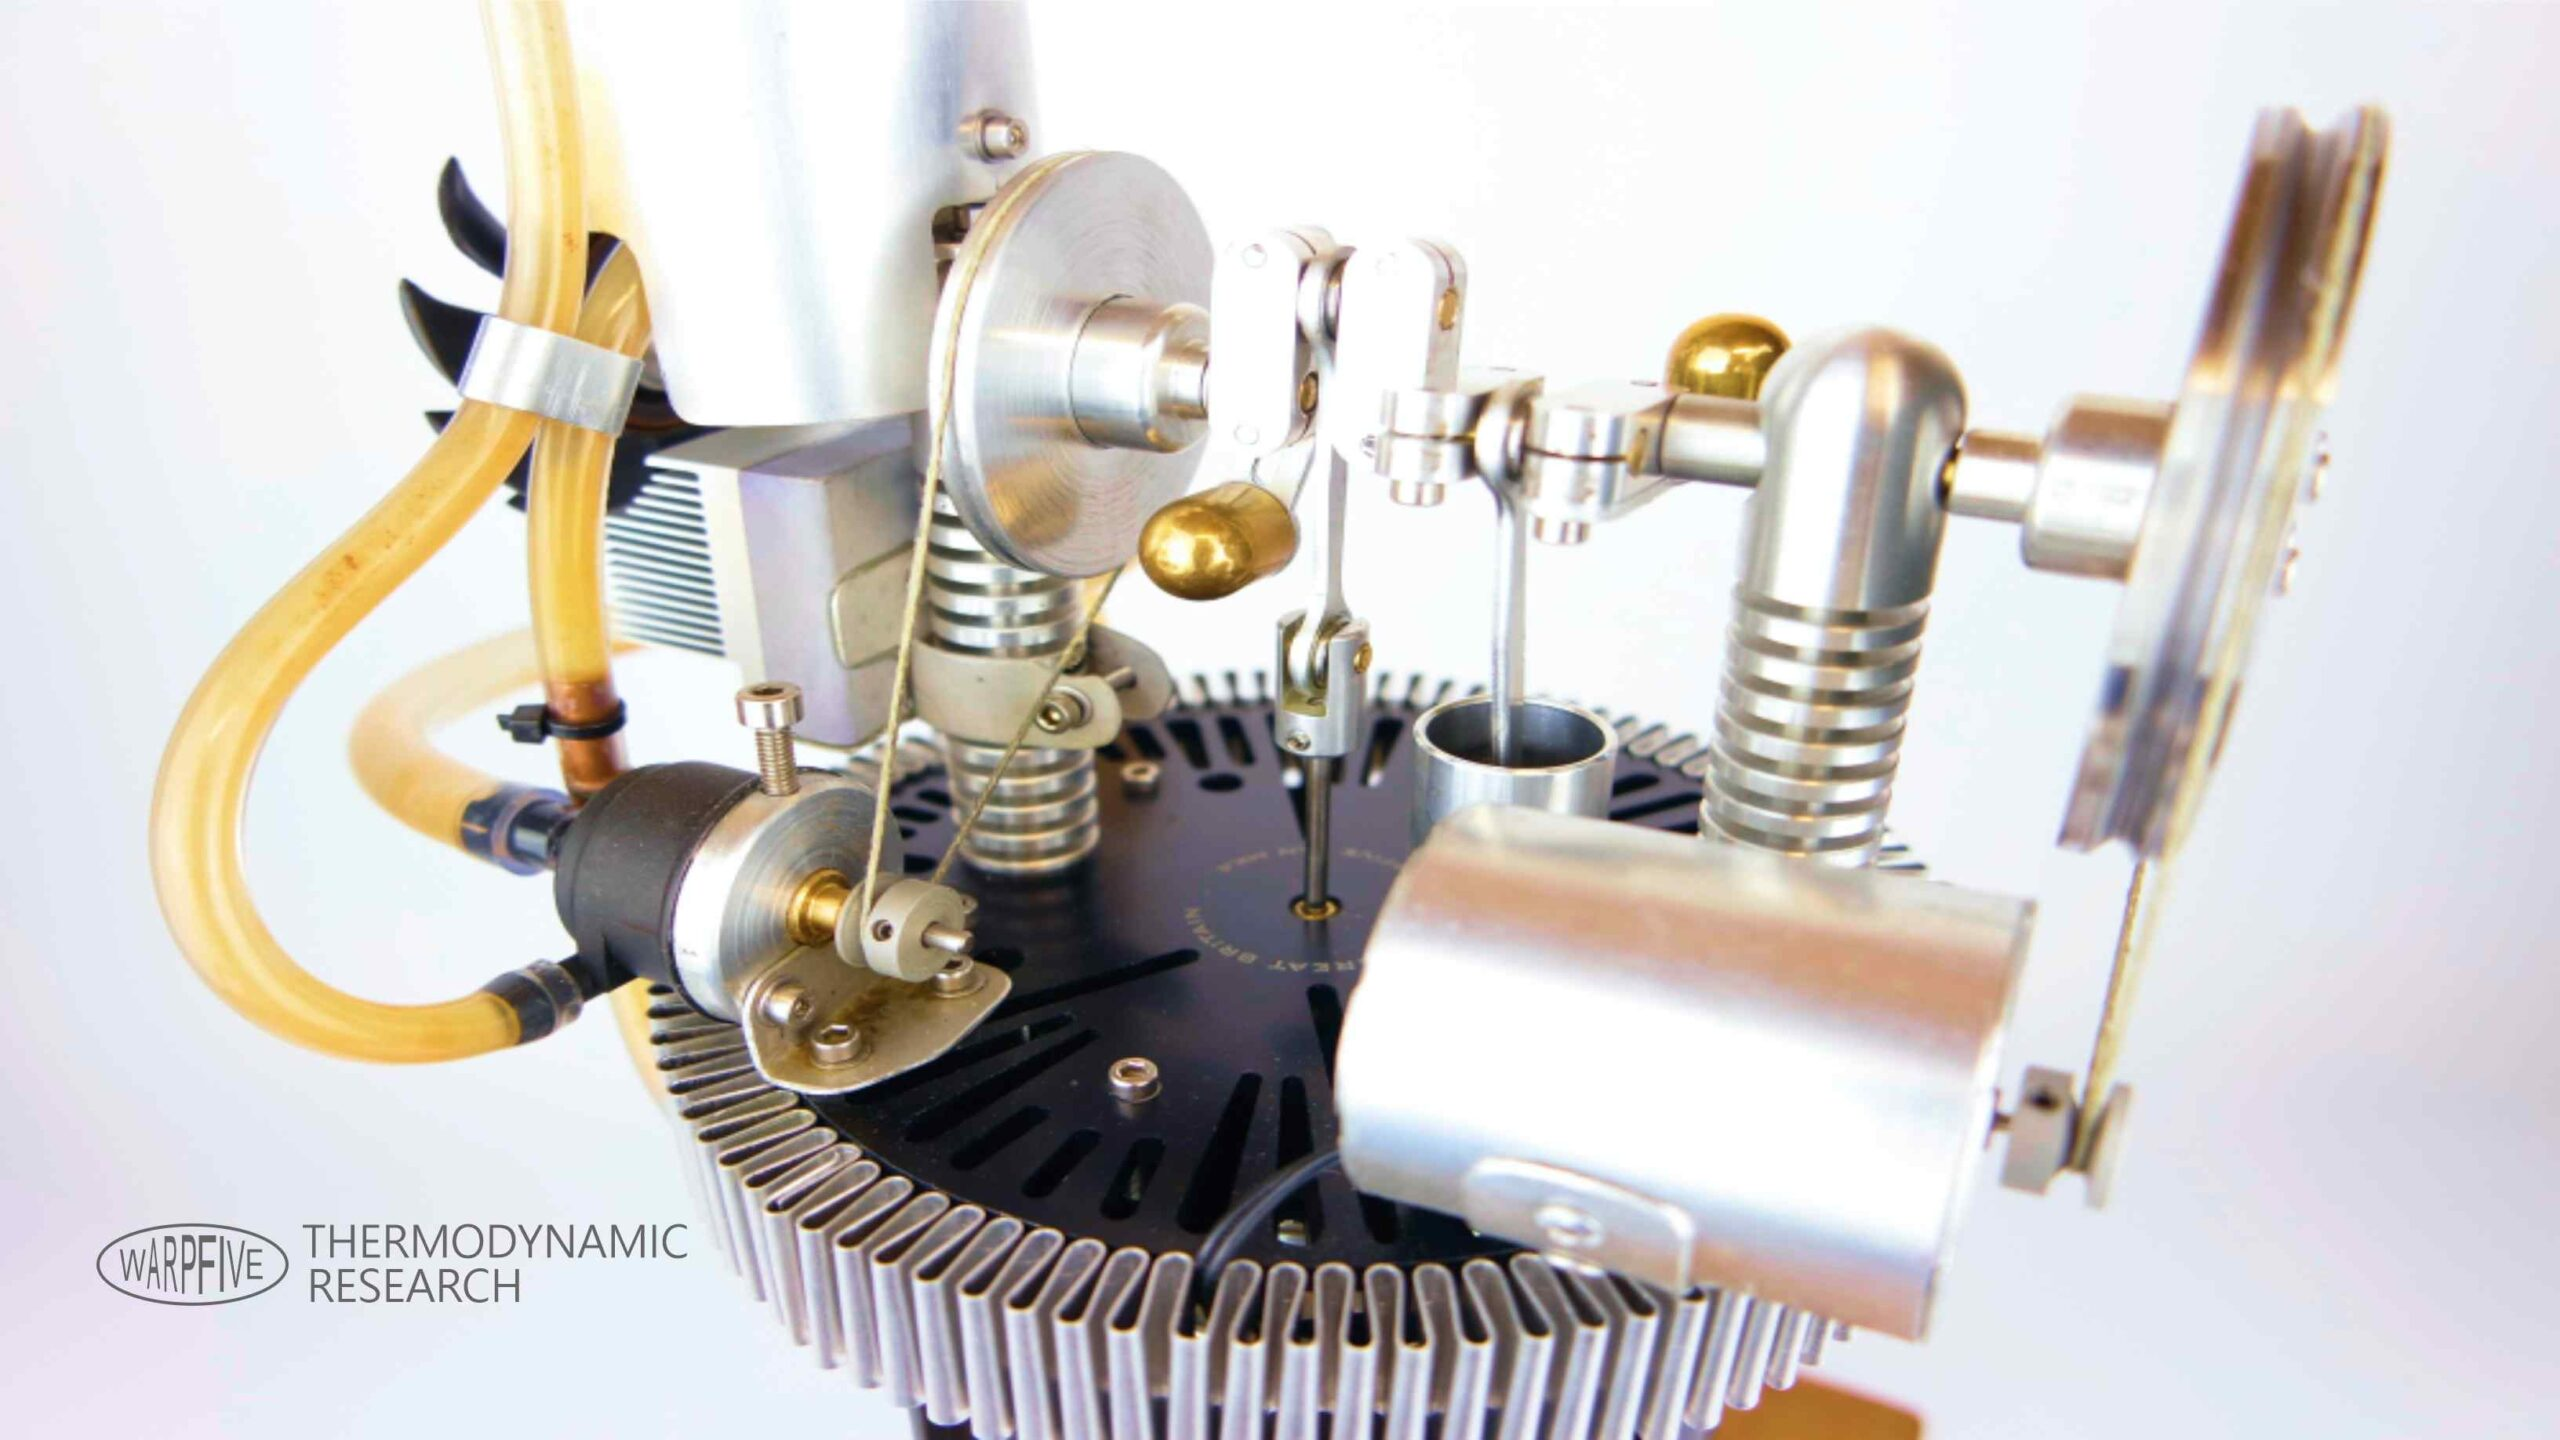 Warpfive prototype Stirling engine generator – finned, water-cooled design and built to optimise thermodynamics